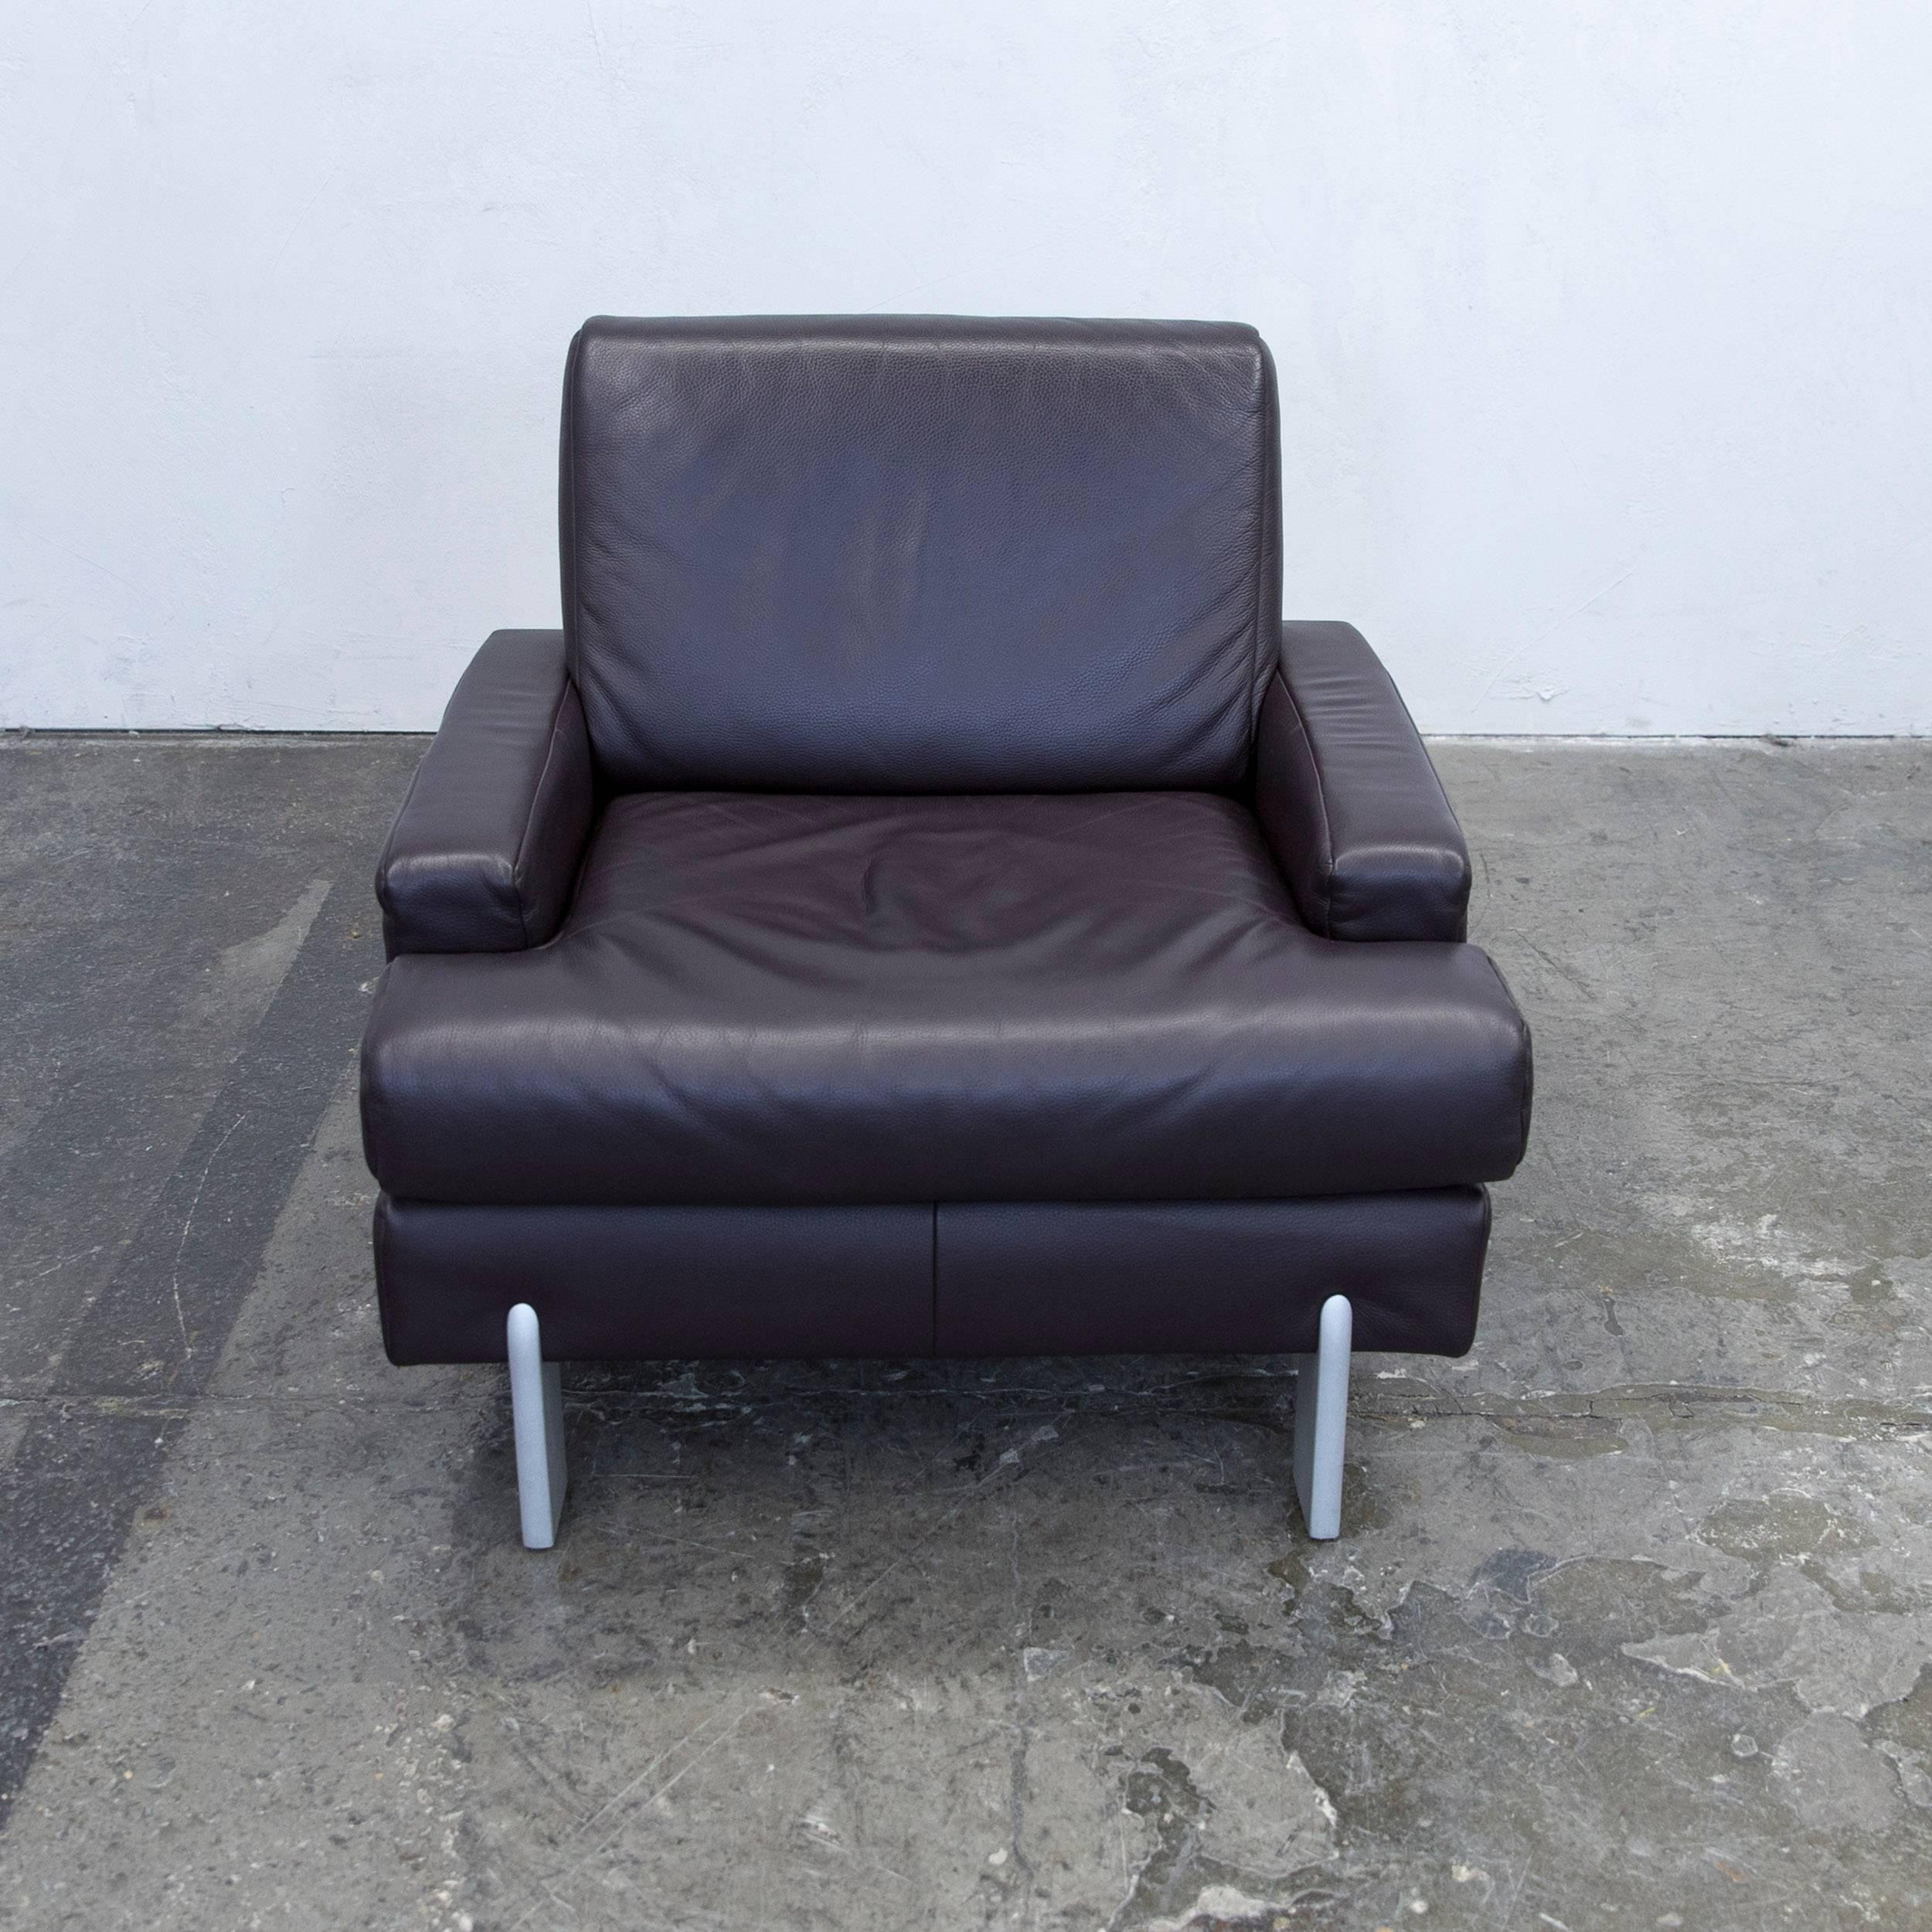 German Rolf Benz Designer Armchair Leather Aubergine Violet One Seat Couch  Modern For Sale